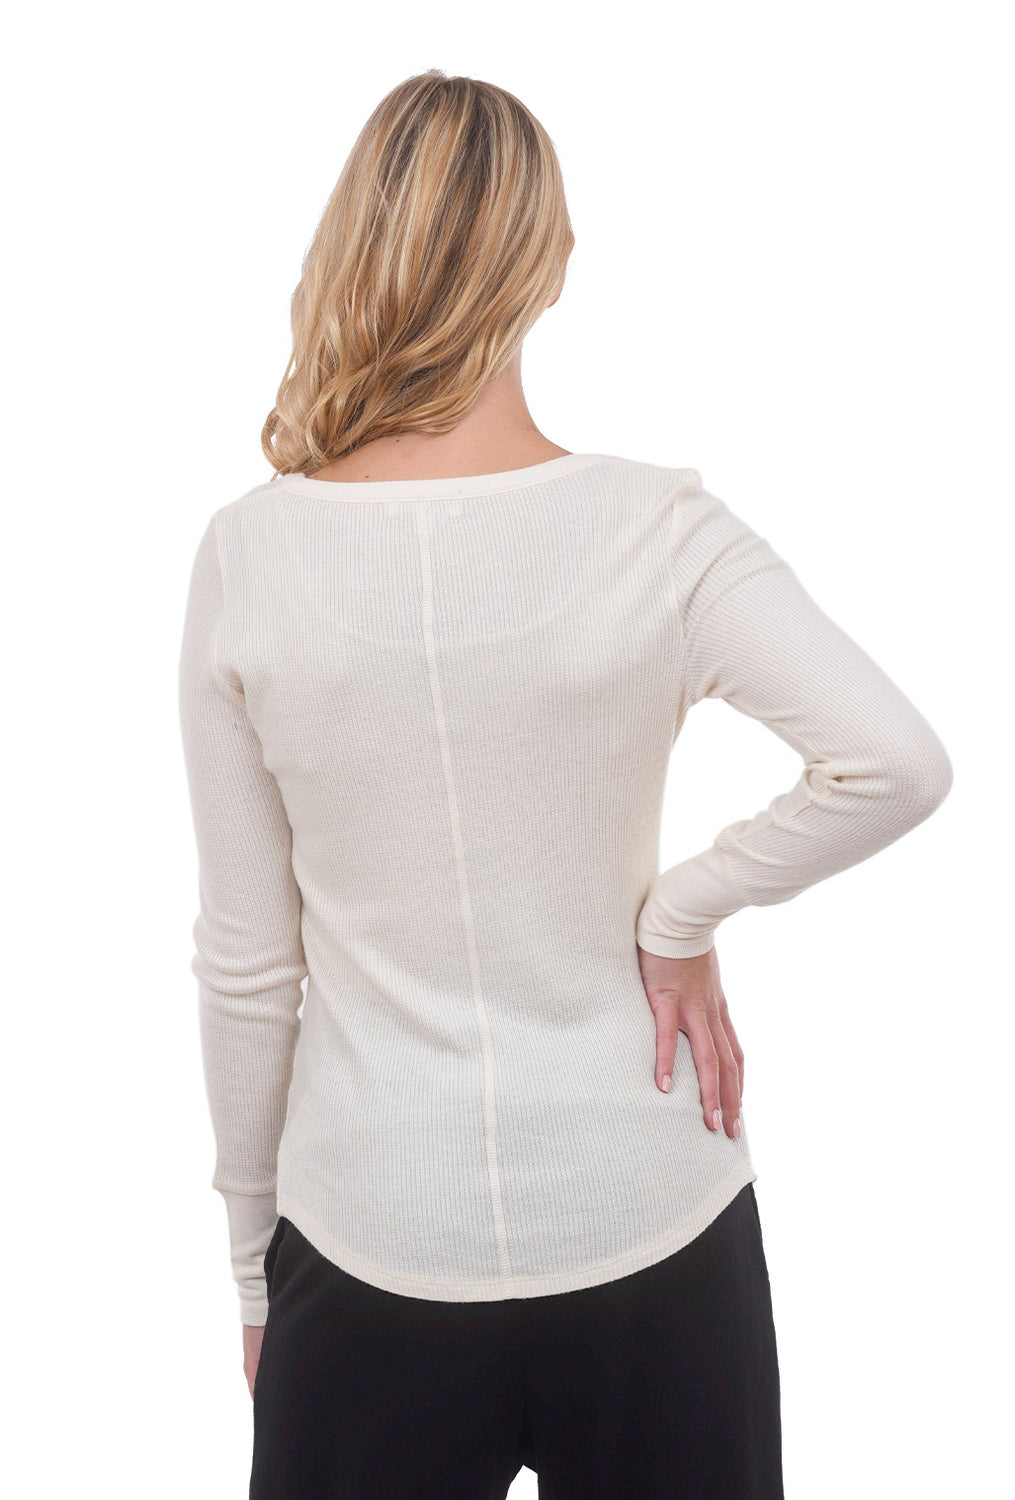 P.J. Salvage Basil L/S Top, Stone